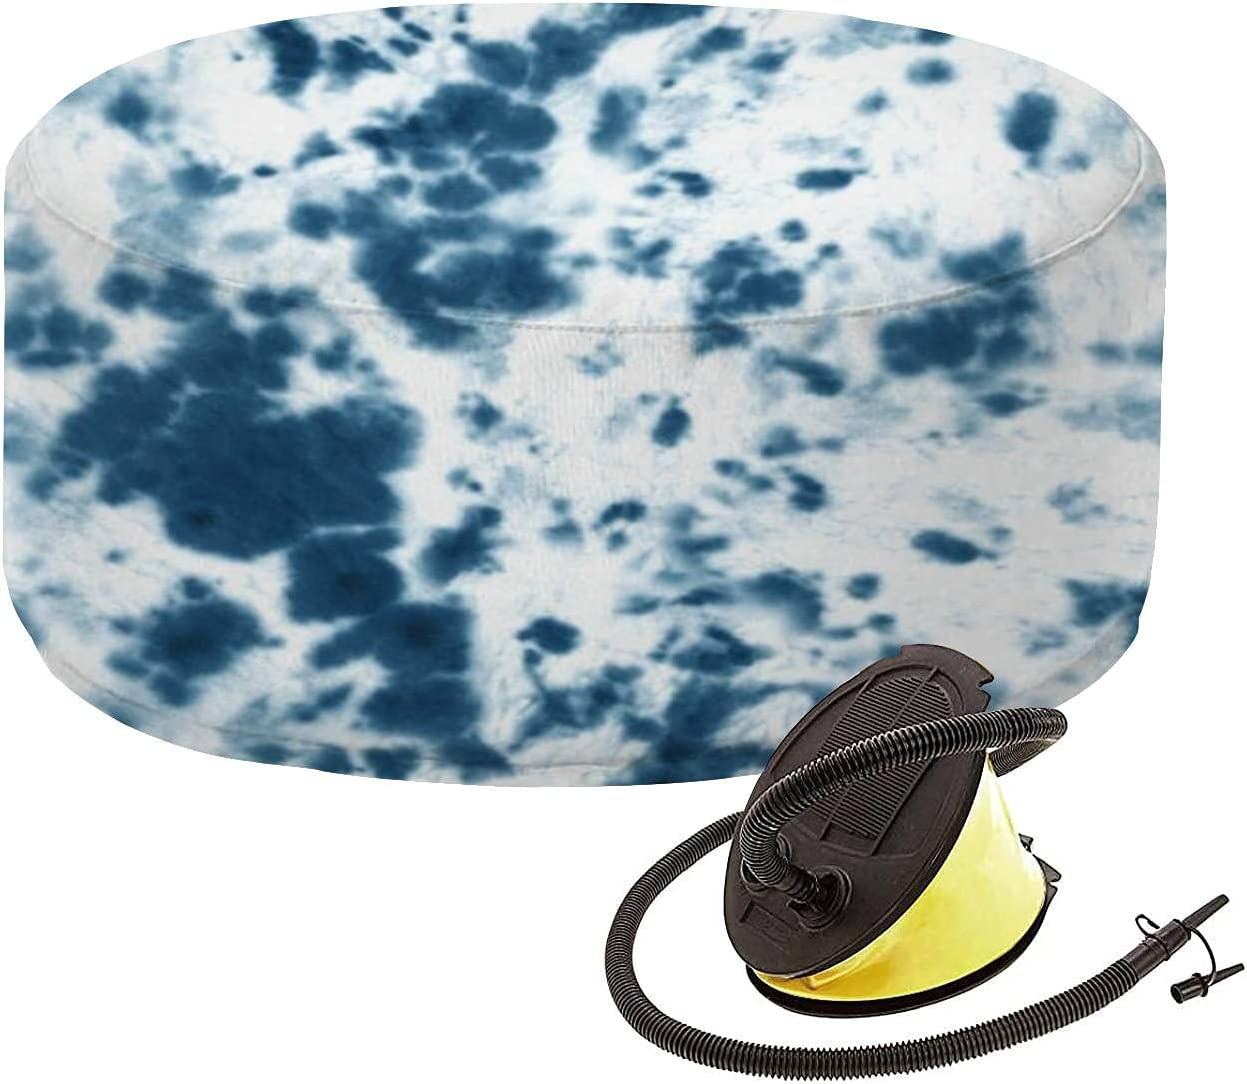 Indoor Free shipping anywhere in the nation It is very popular Outdoor Inflatable Ottoman Tie Patt dye Shibori Seamless